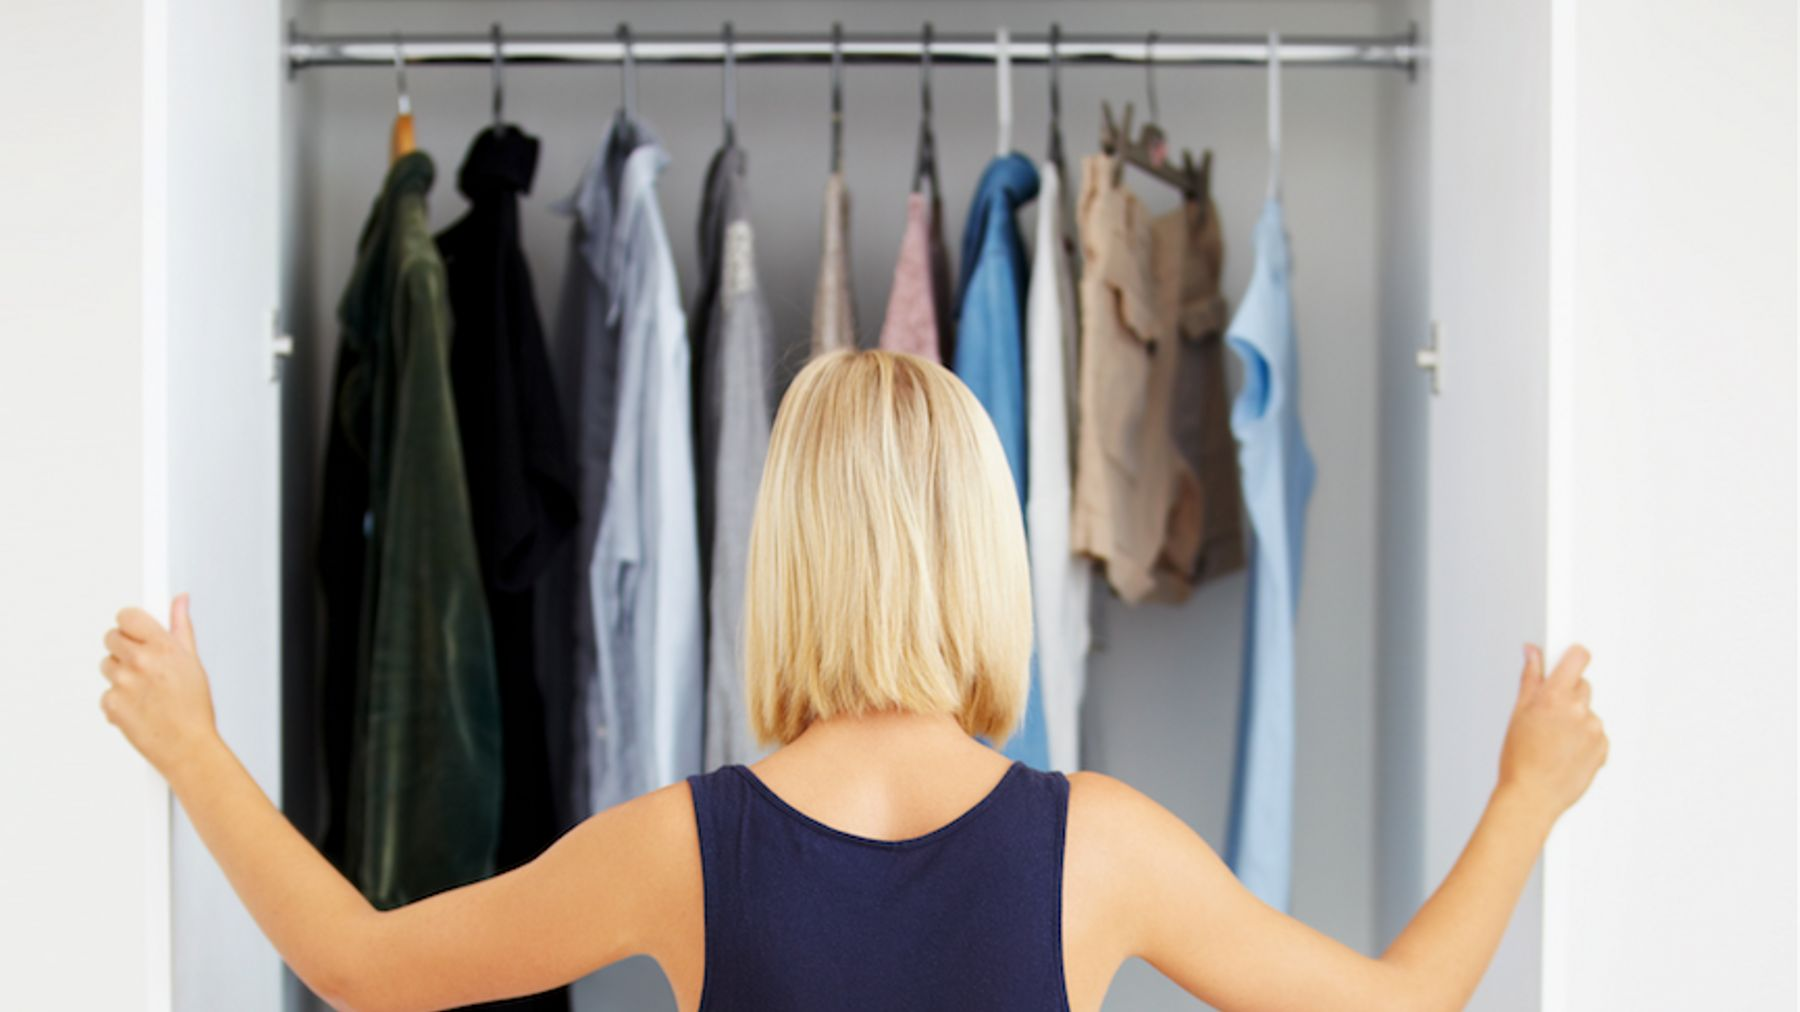 The Average British Woman Wears Just Five Outfits On A Loop